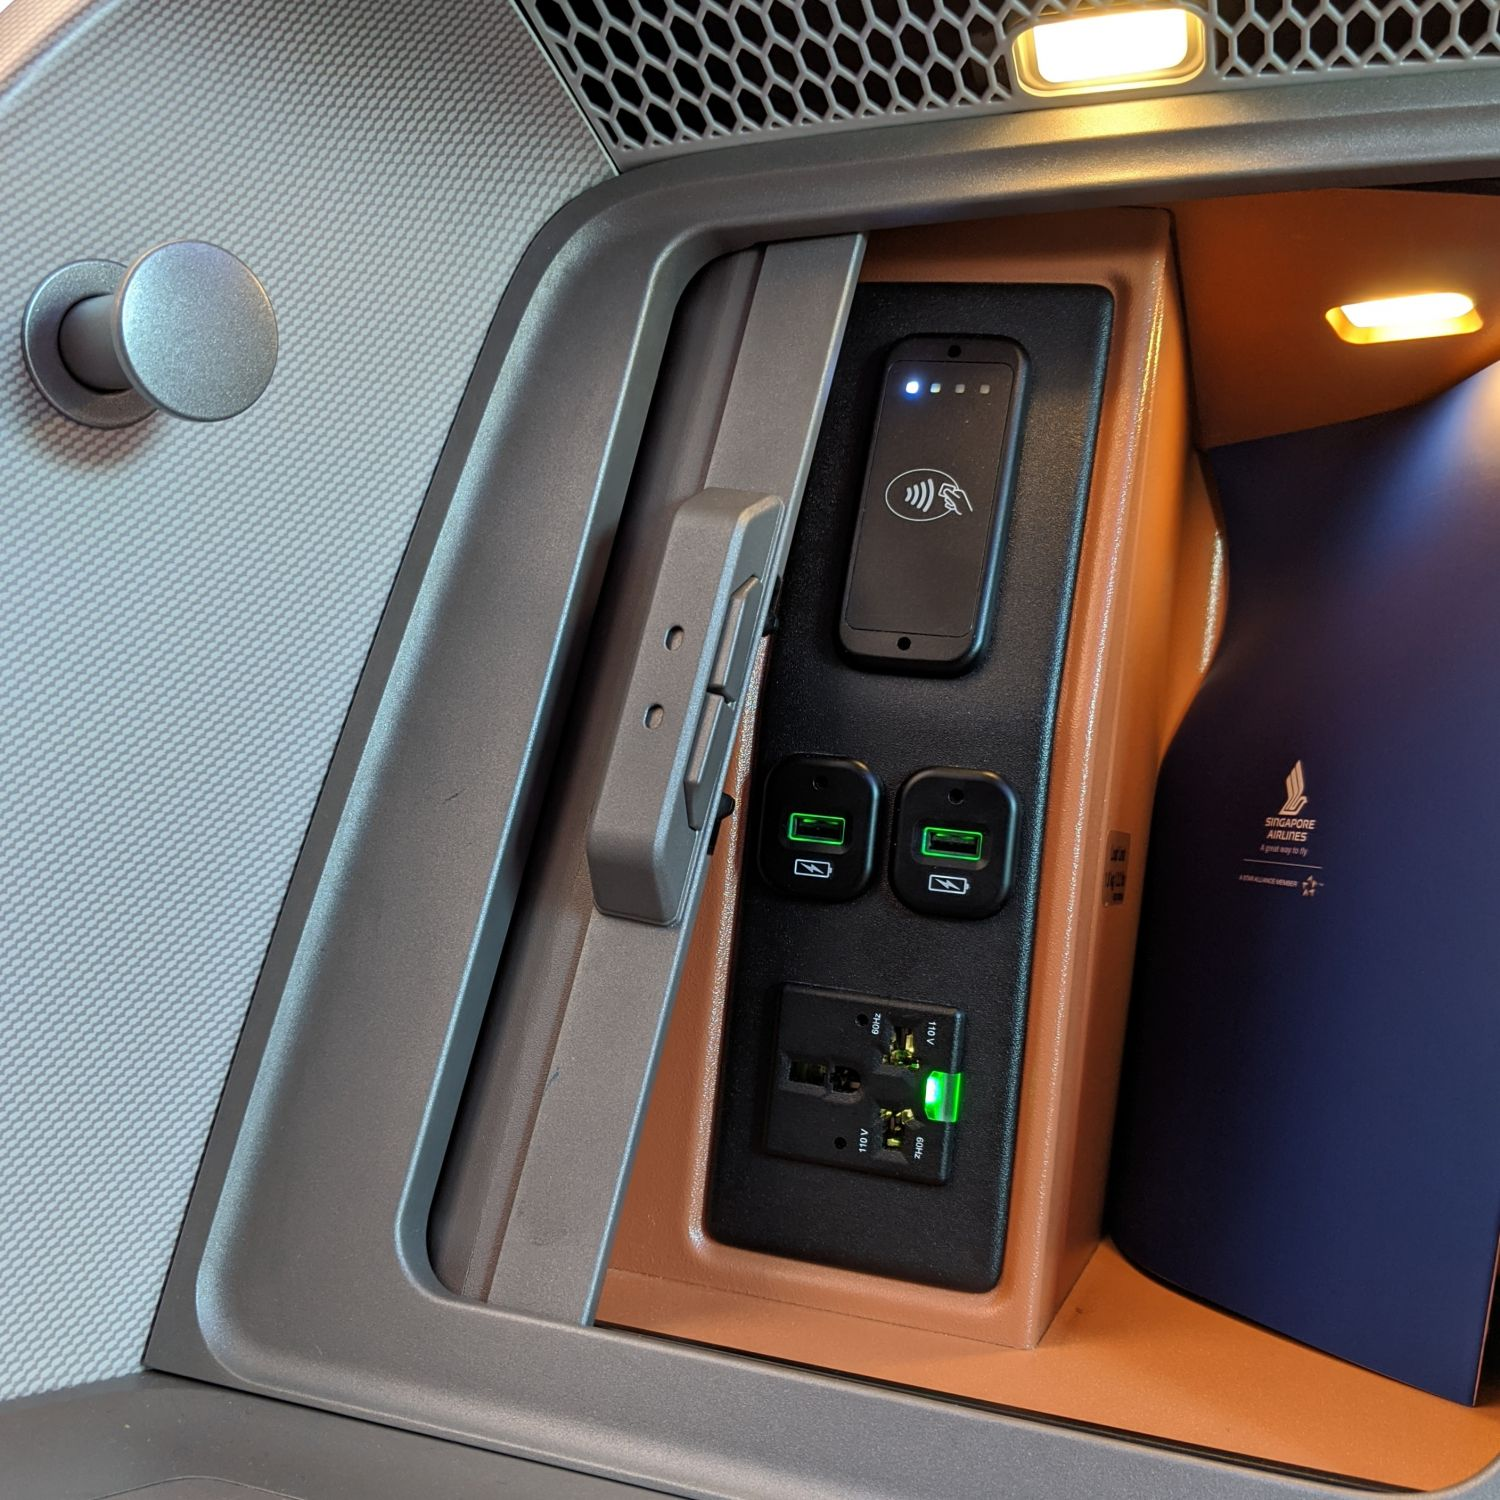 Regional Business Class on Singapore Airlines SQ850 Boeing 787-10 Business Class Cabin